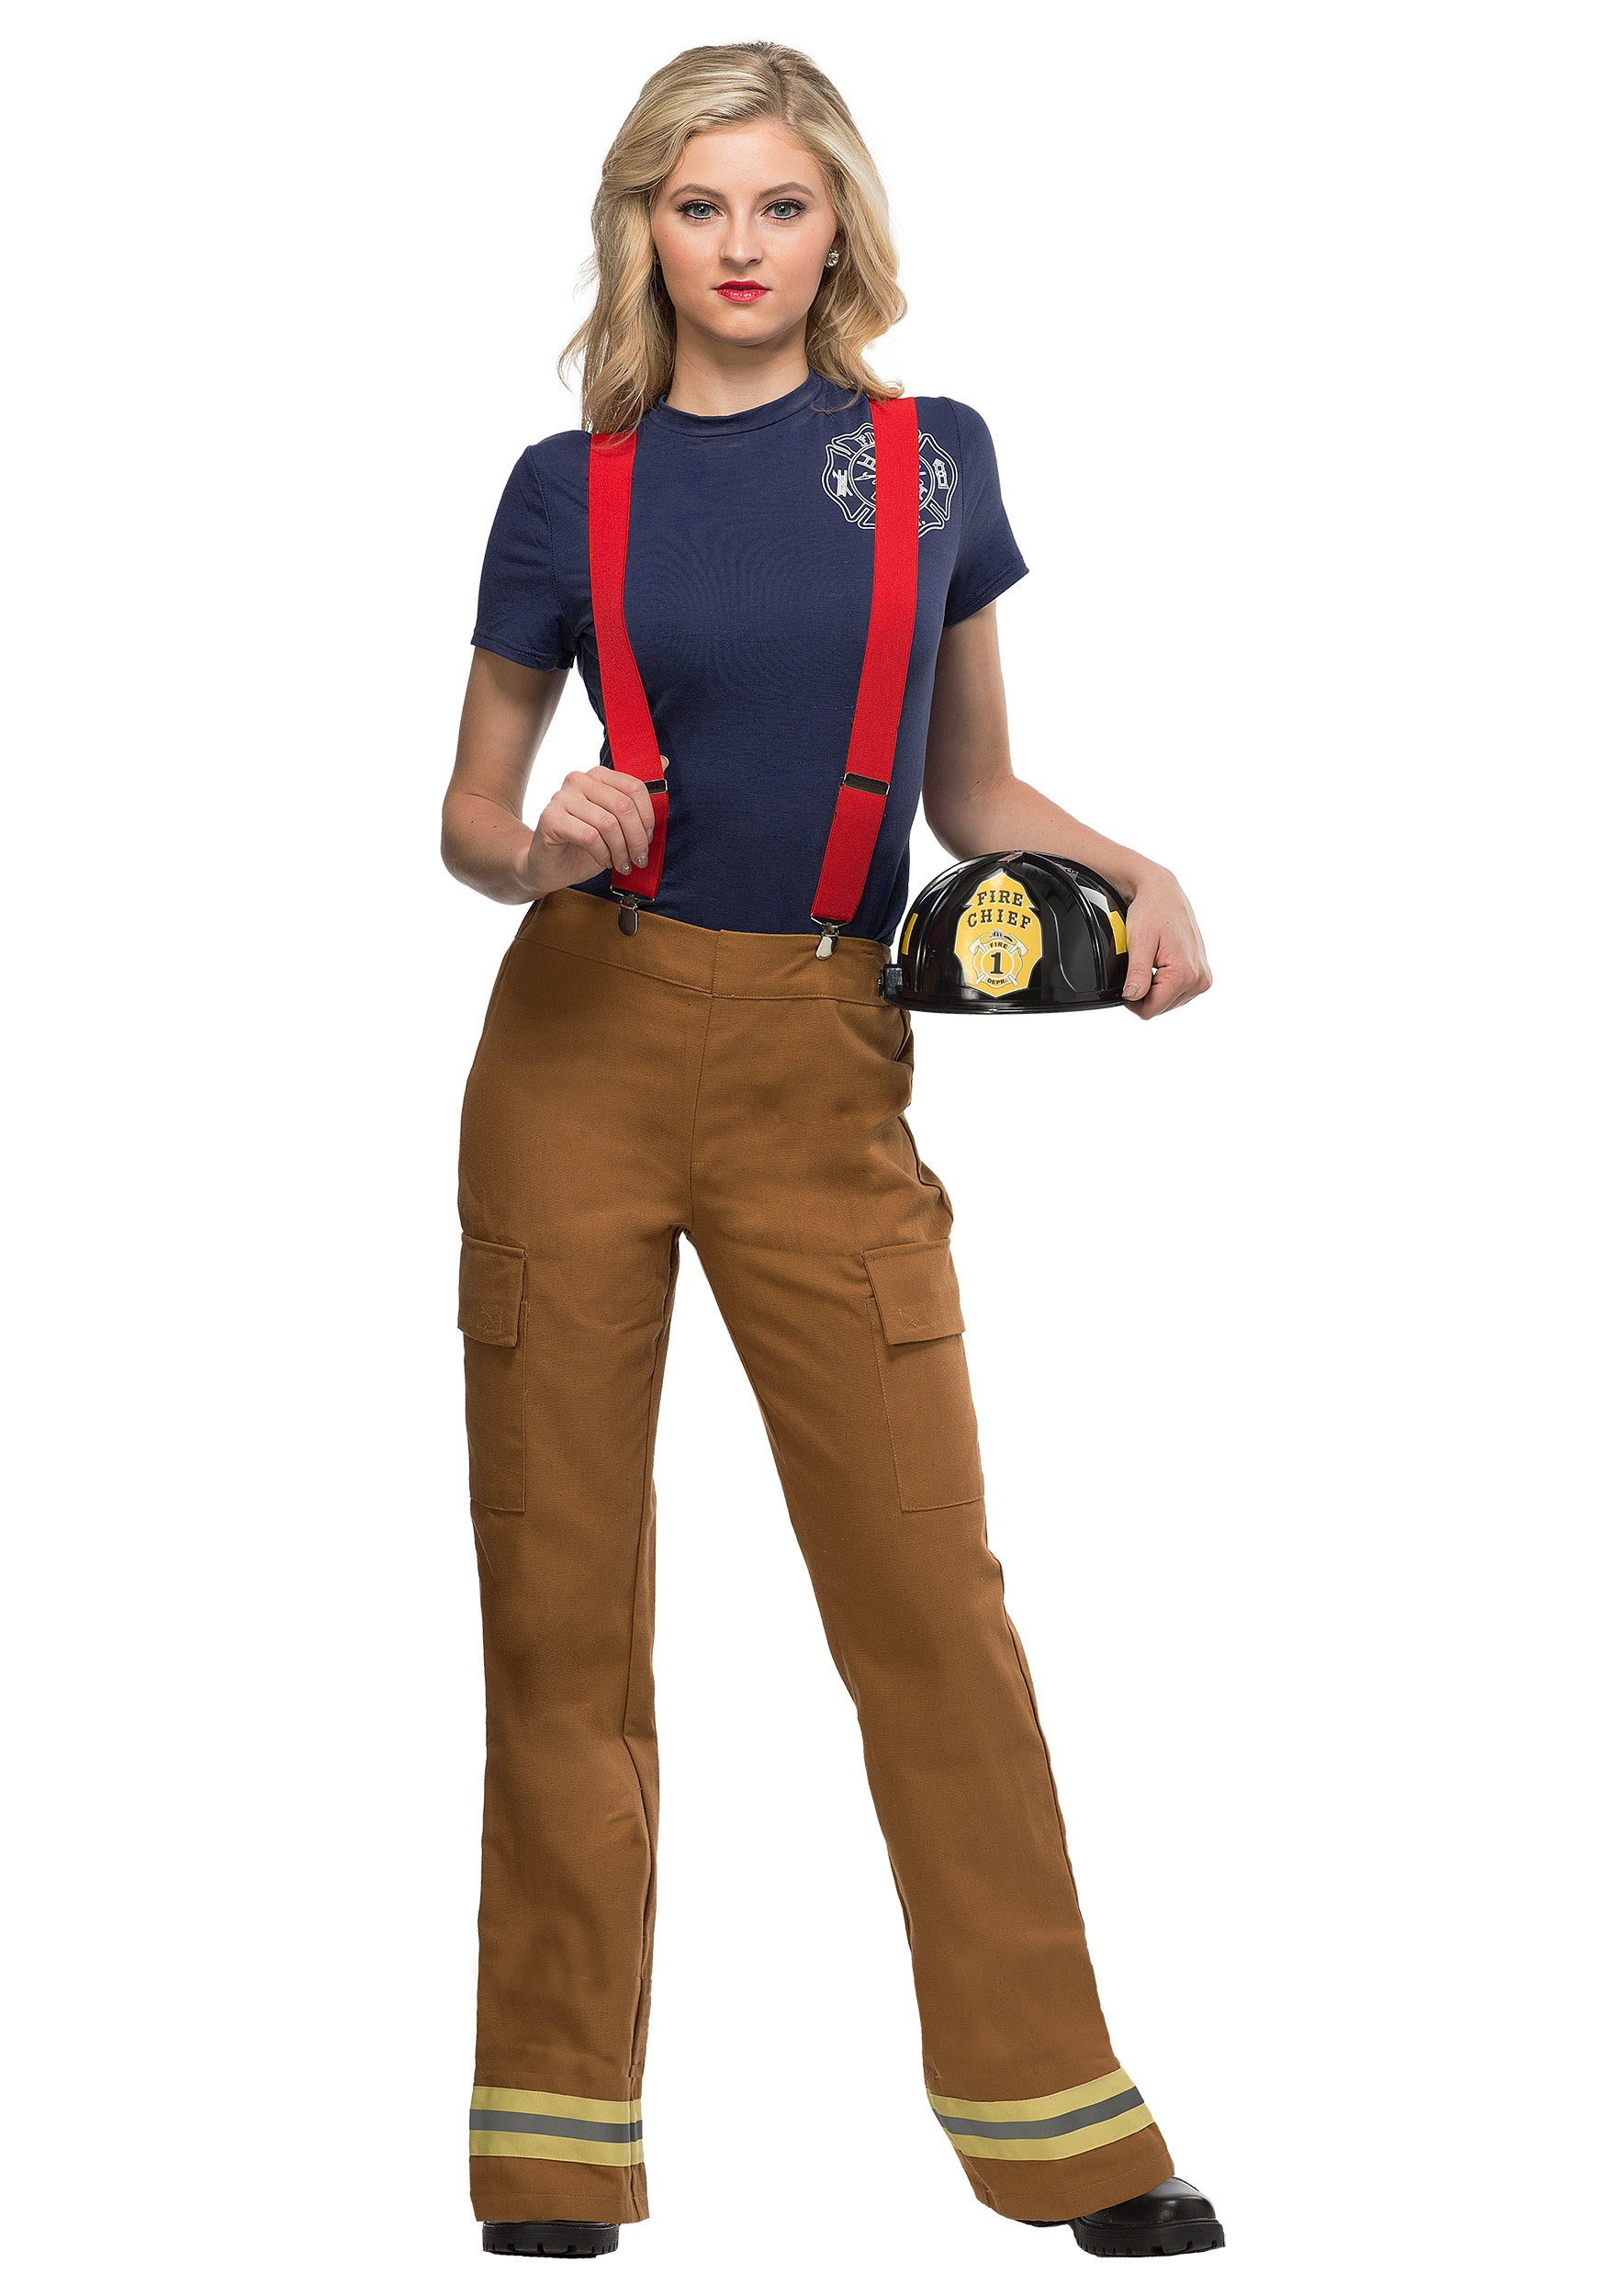 Fire Captain Costume for Women